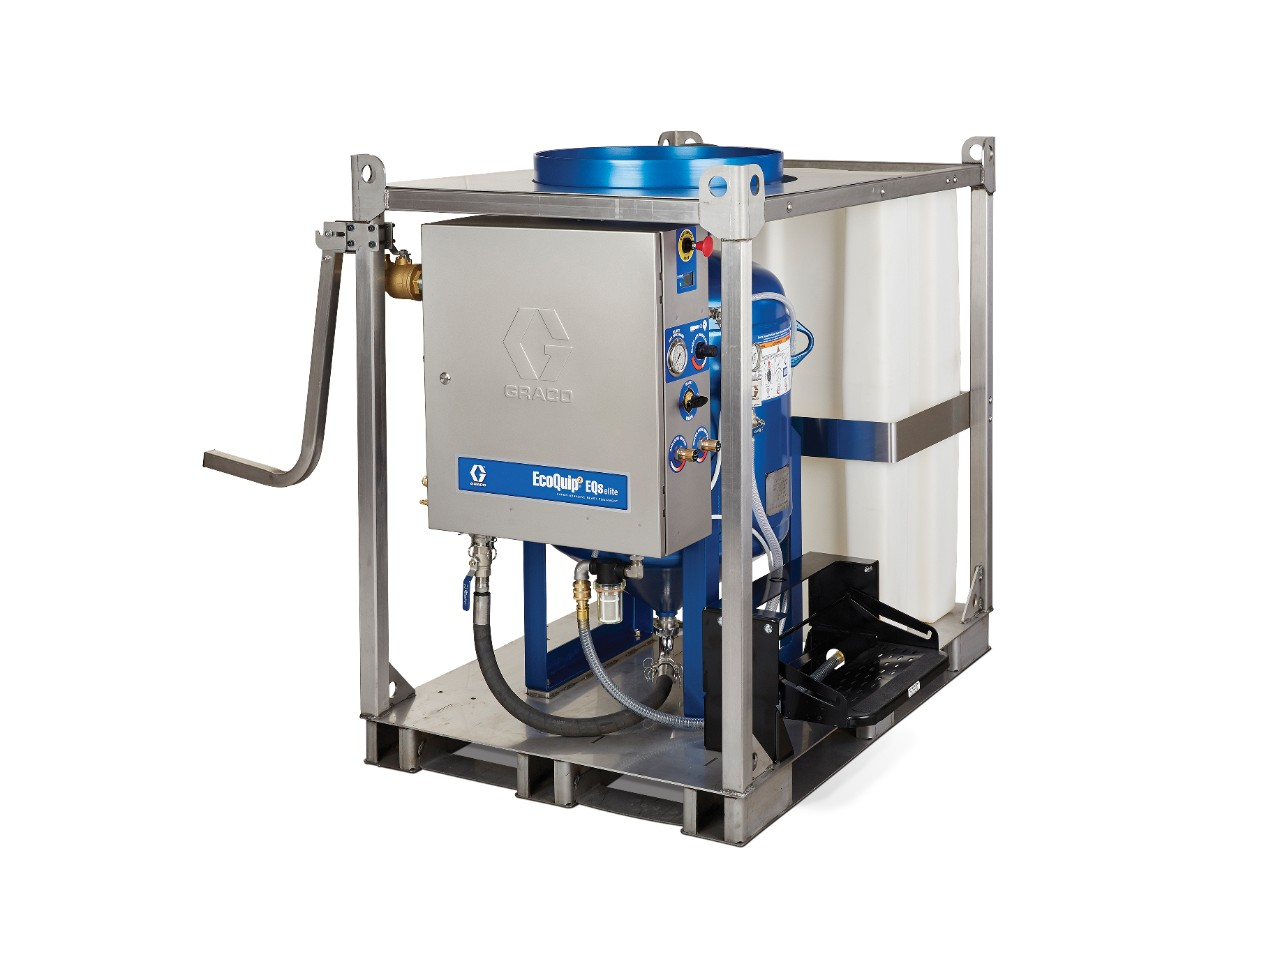 EcoQuip 2 EQs Elite Graco Abrasive Blast Equipment